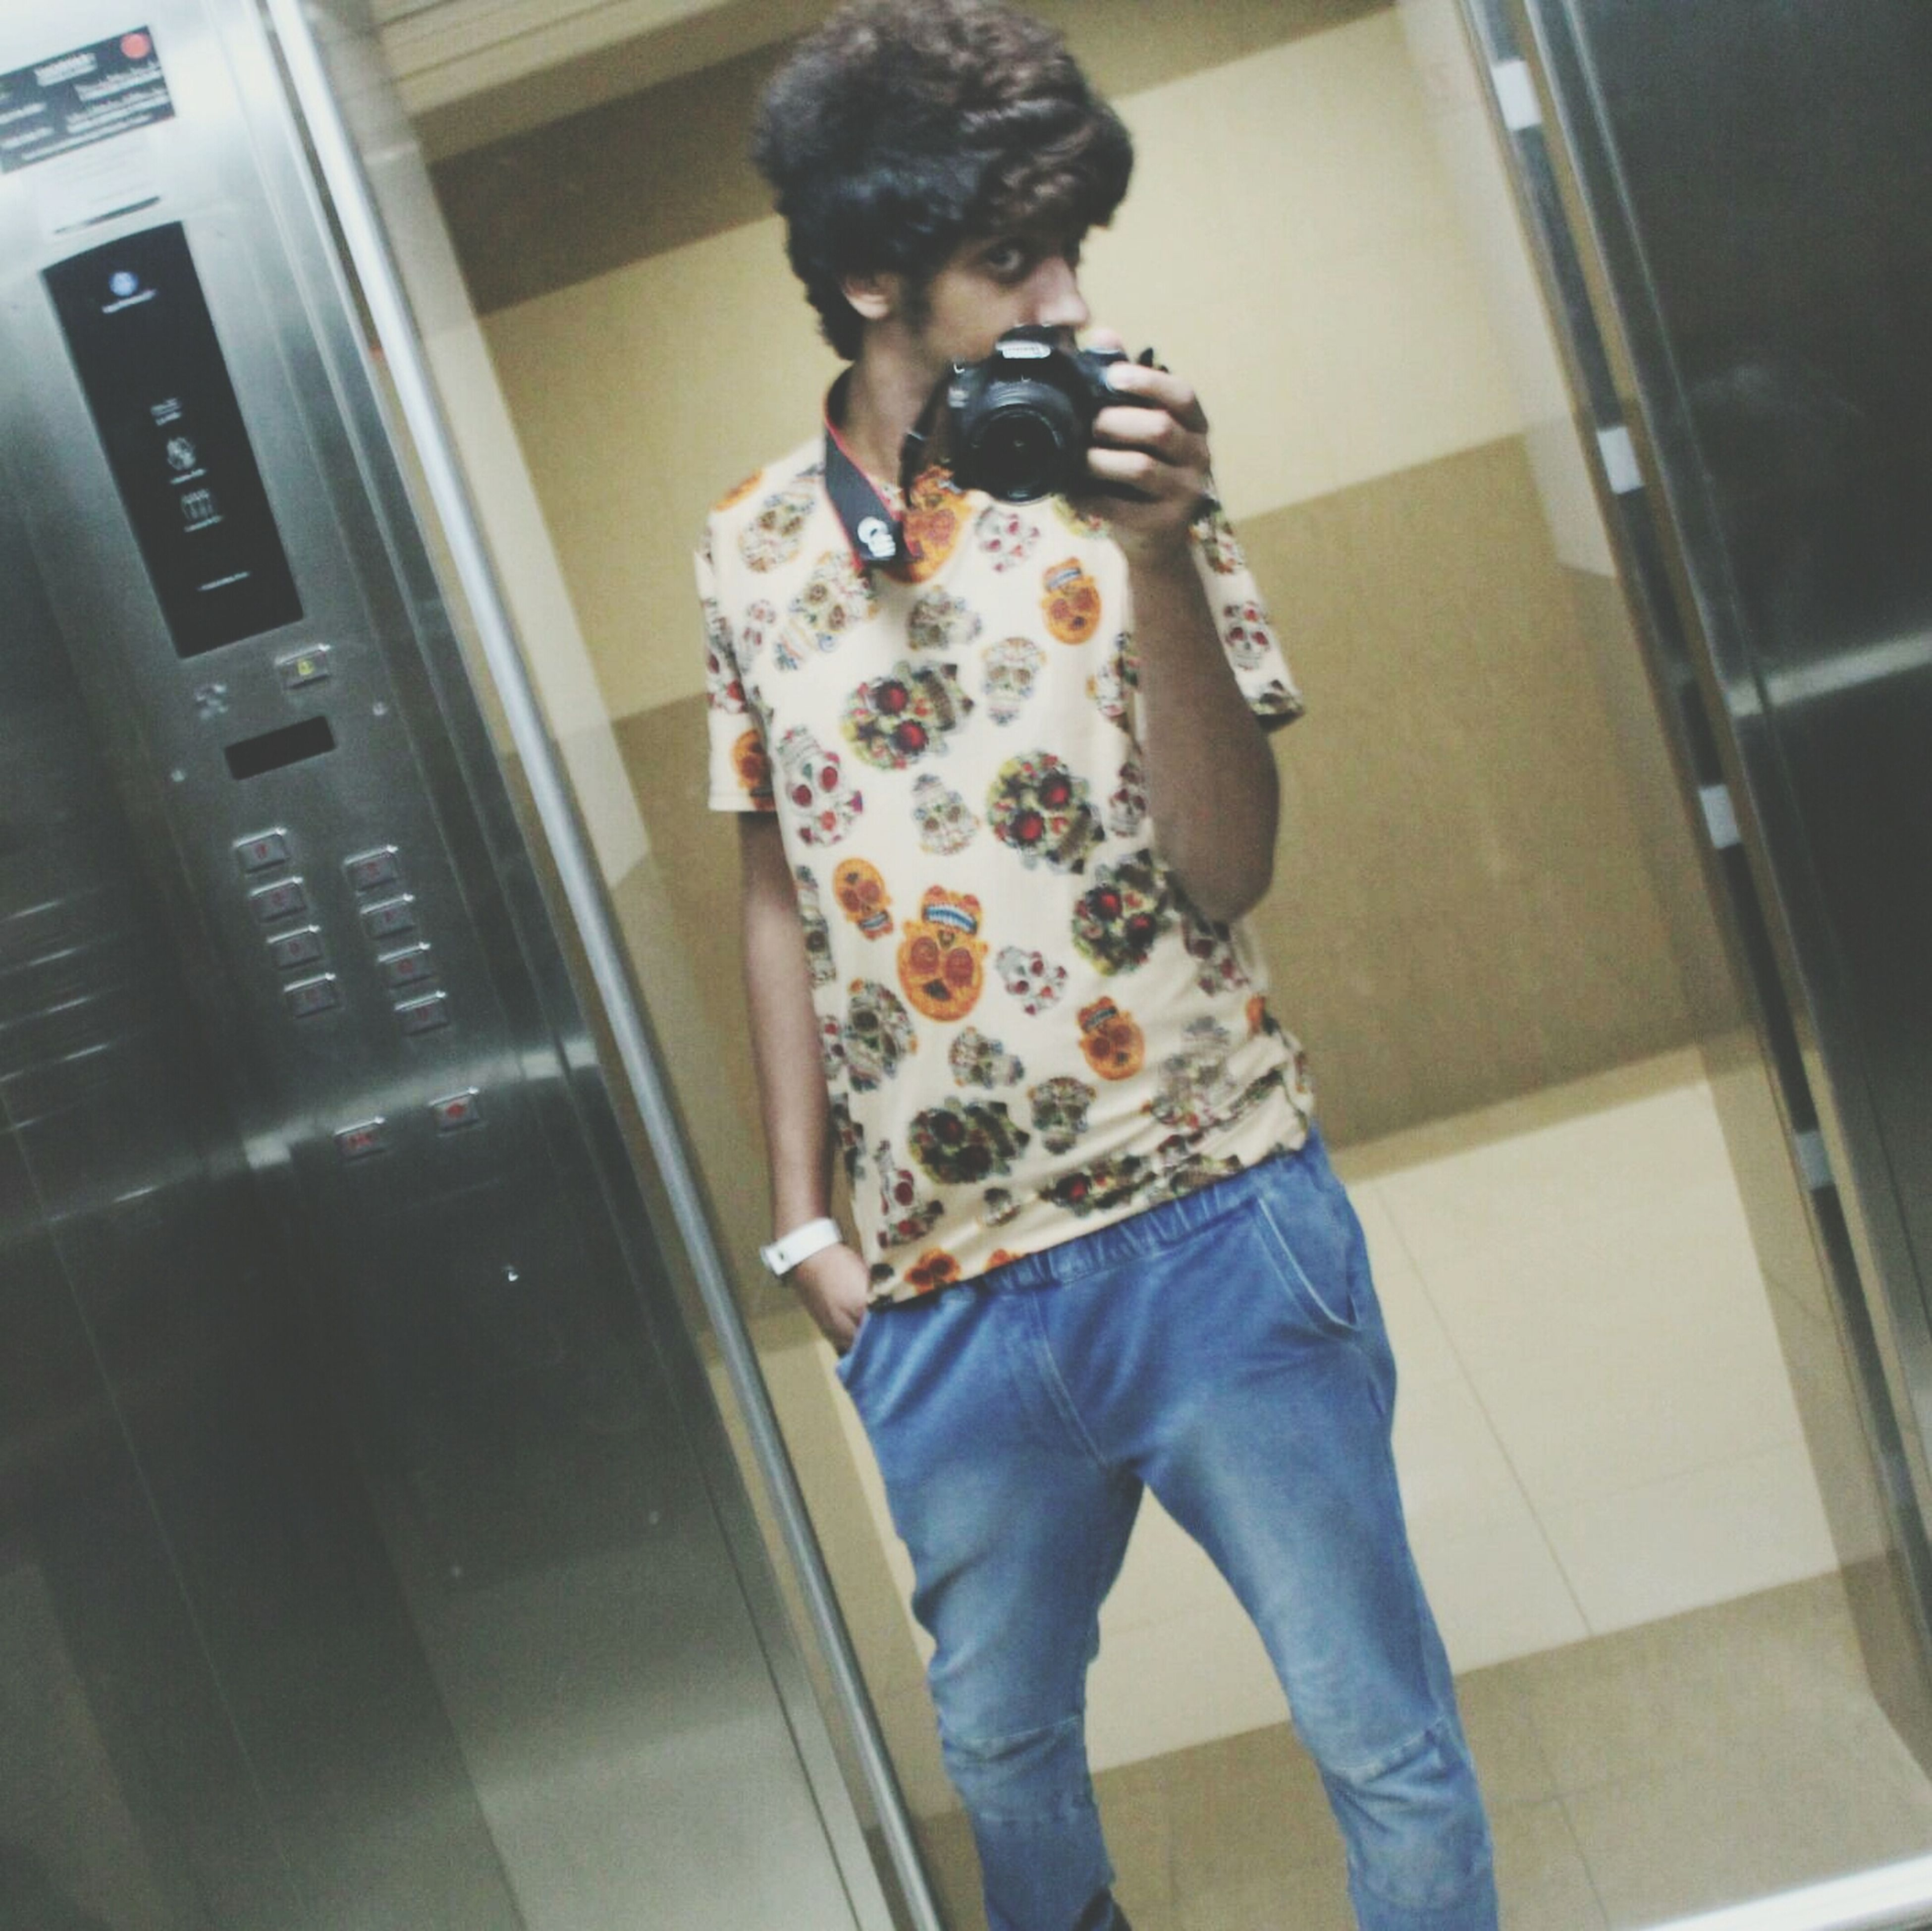 indoors, casual clothing, lifestyles, full length, person, three quarter length, leisure activity, standing, young adult, front view, technology, holding, home interior, wireless technology, architecture, portrait, looking at camera, young men